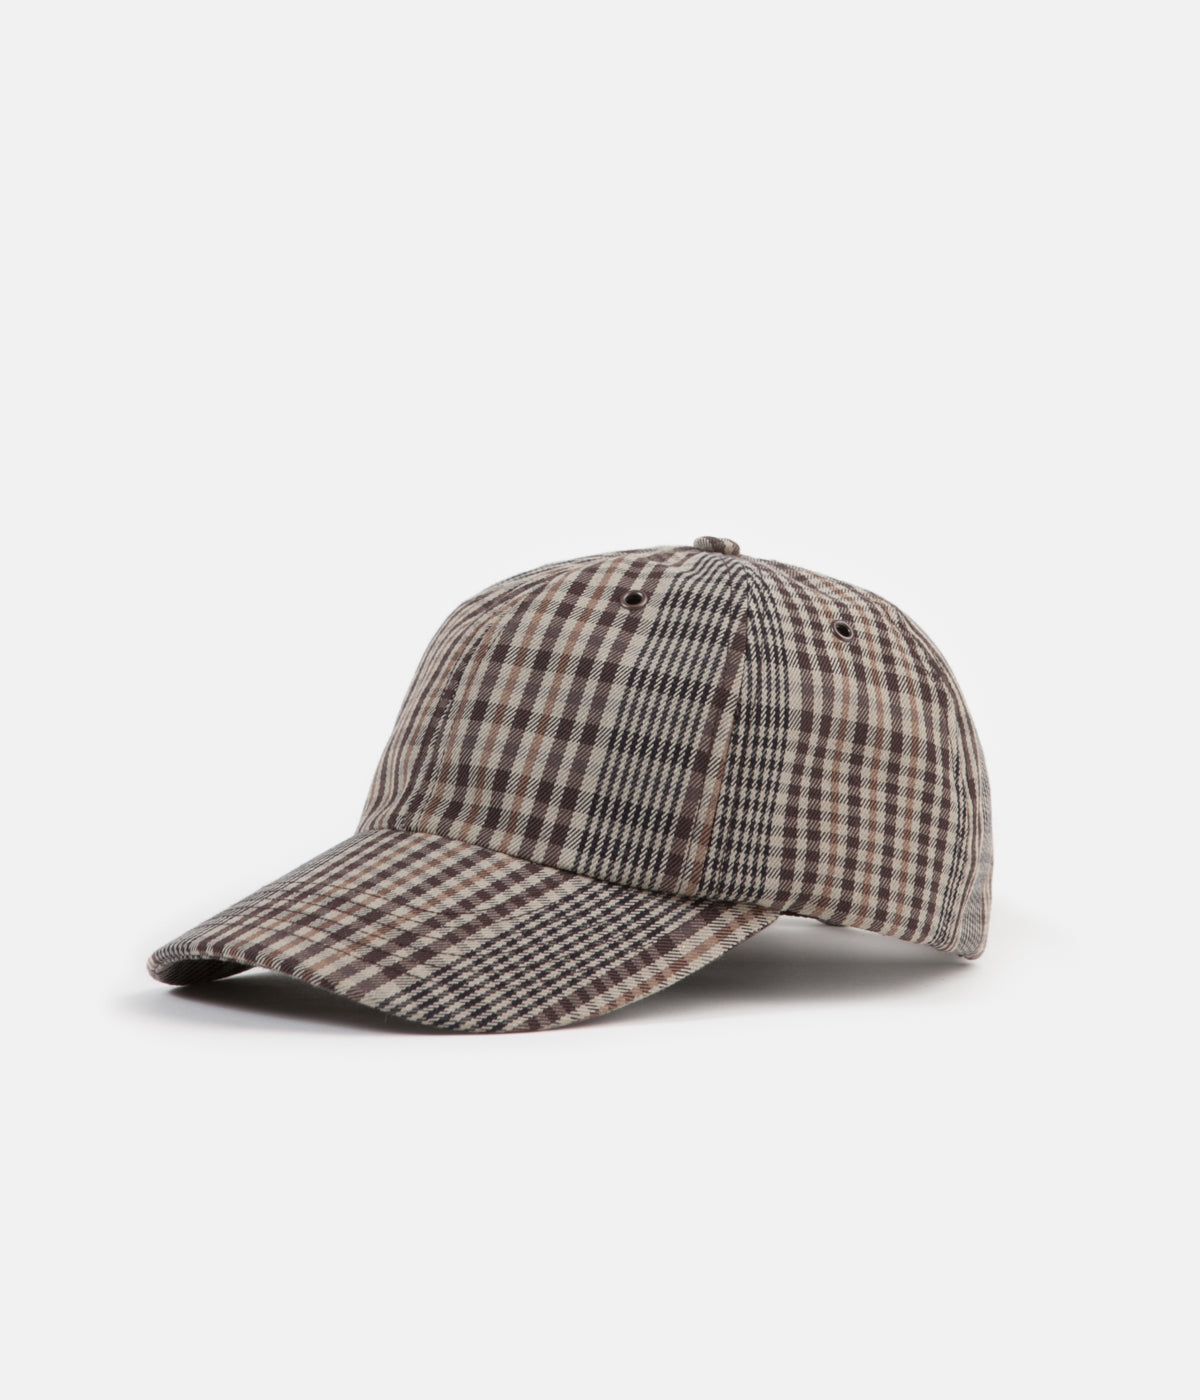 e3b1d72b46fe3 ... Norse Projects Compact Twill Sports Cap - Check ...